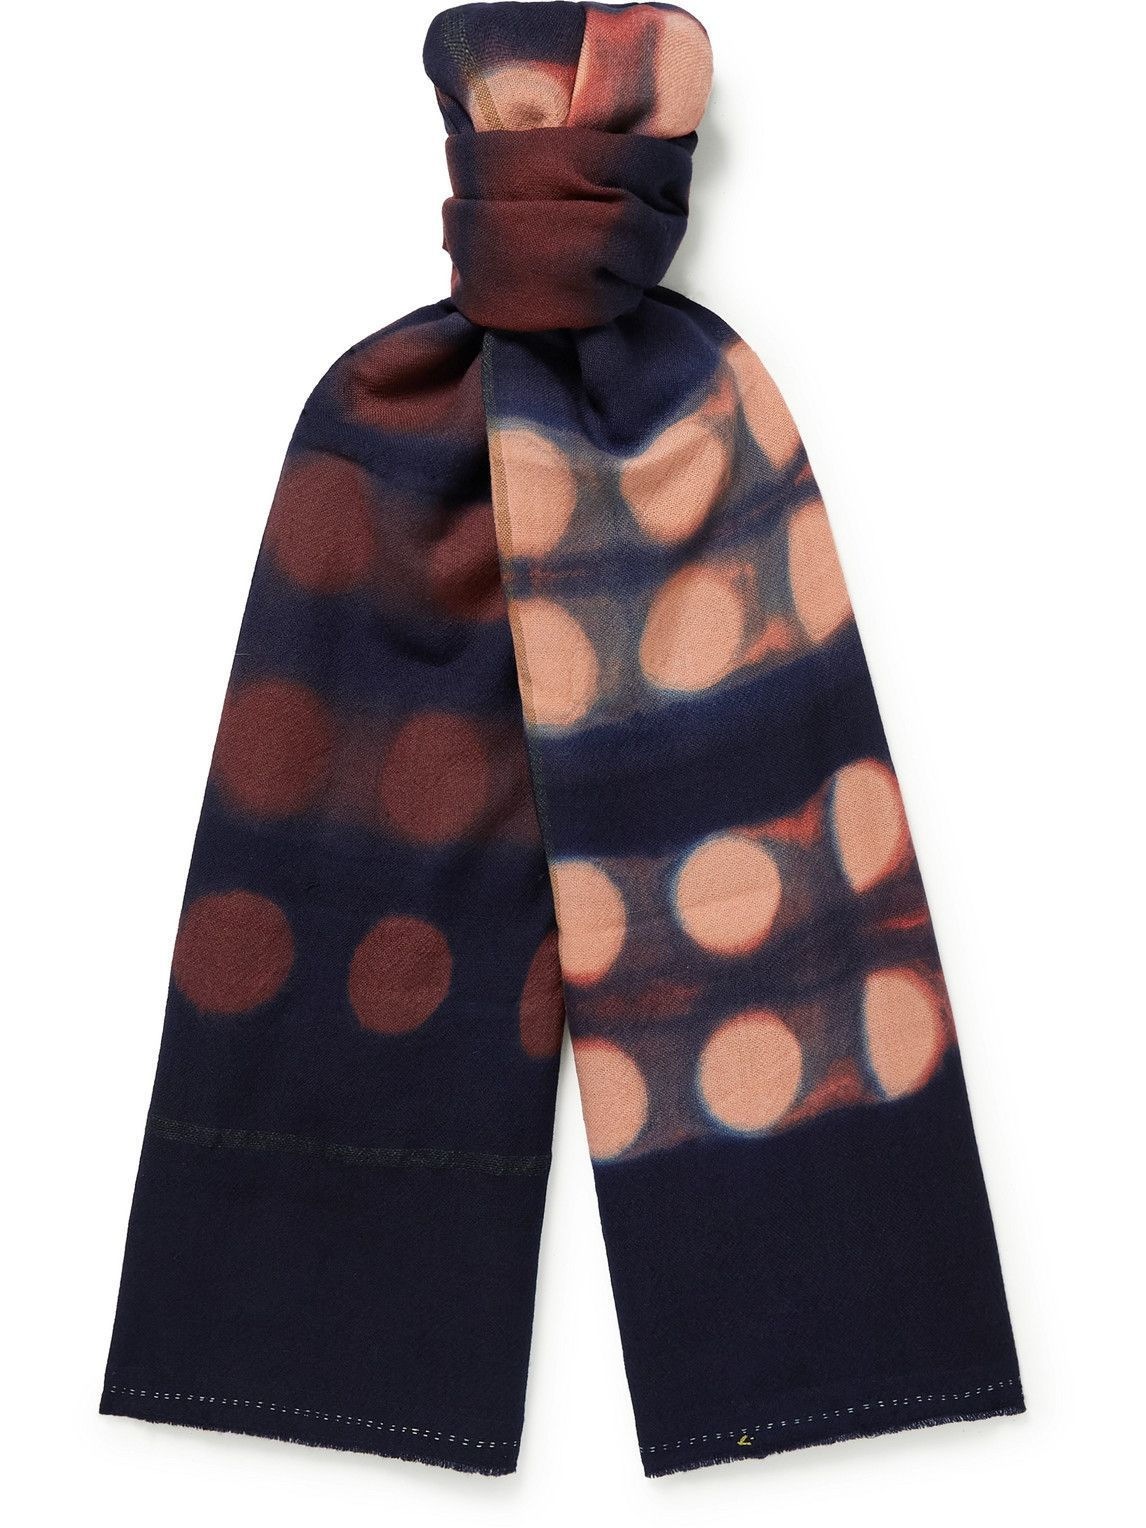 Photo: 11.11/eleven eleven - Tie-Dyed Wool Scarf